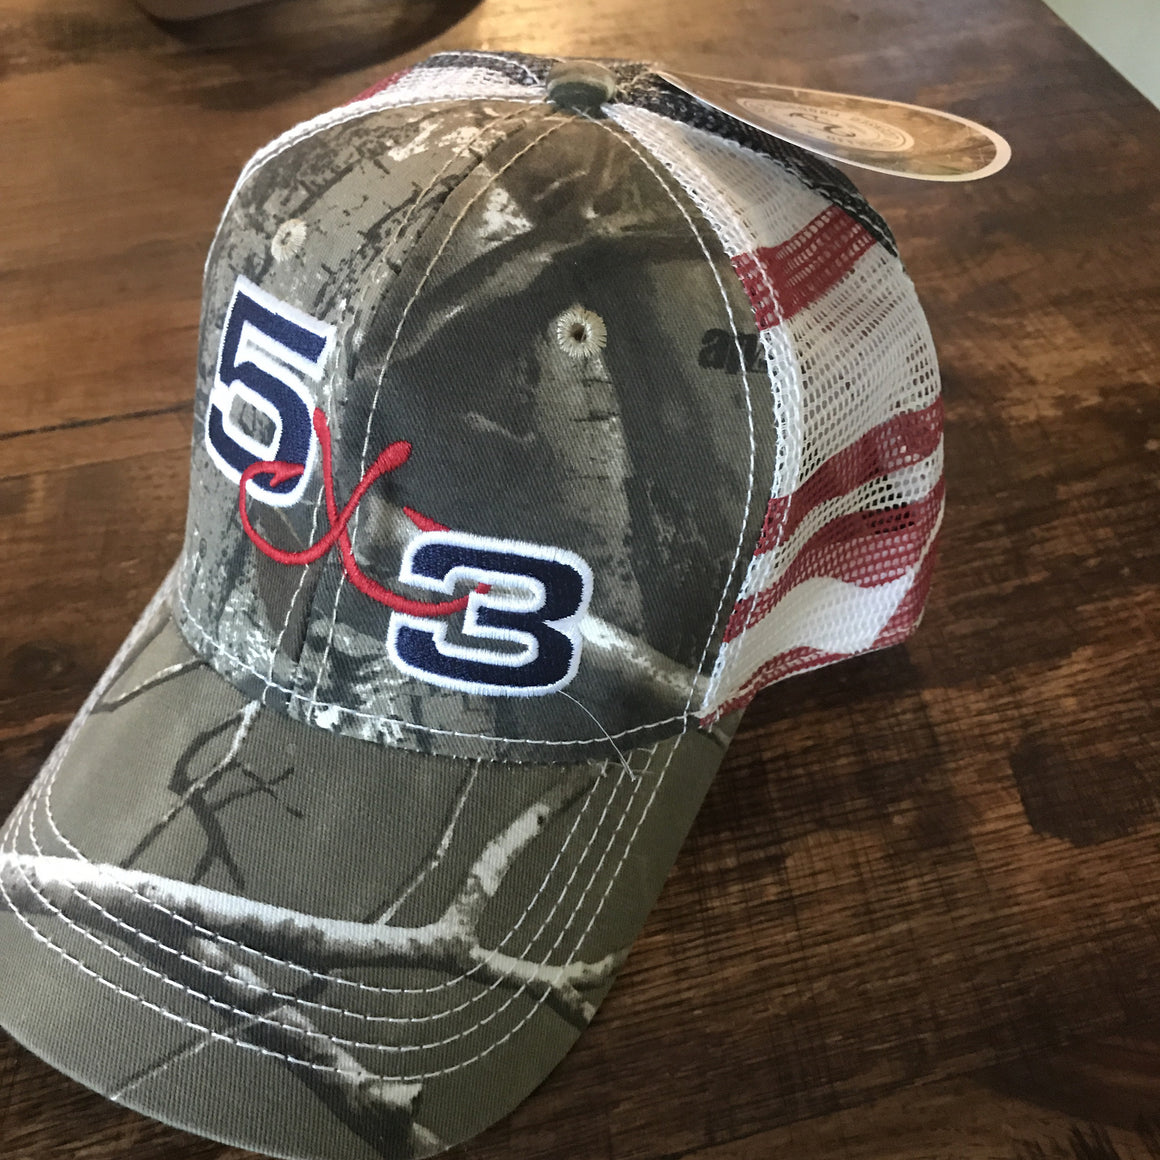 5X3 adjustable American flag and camo hat.